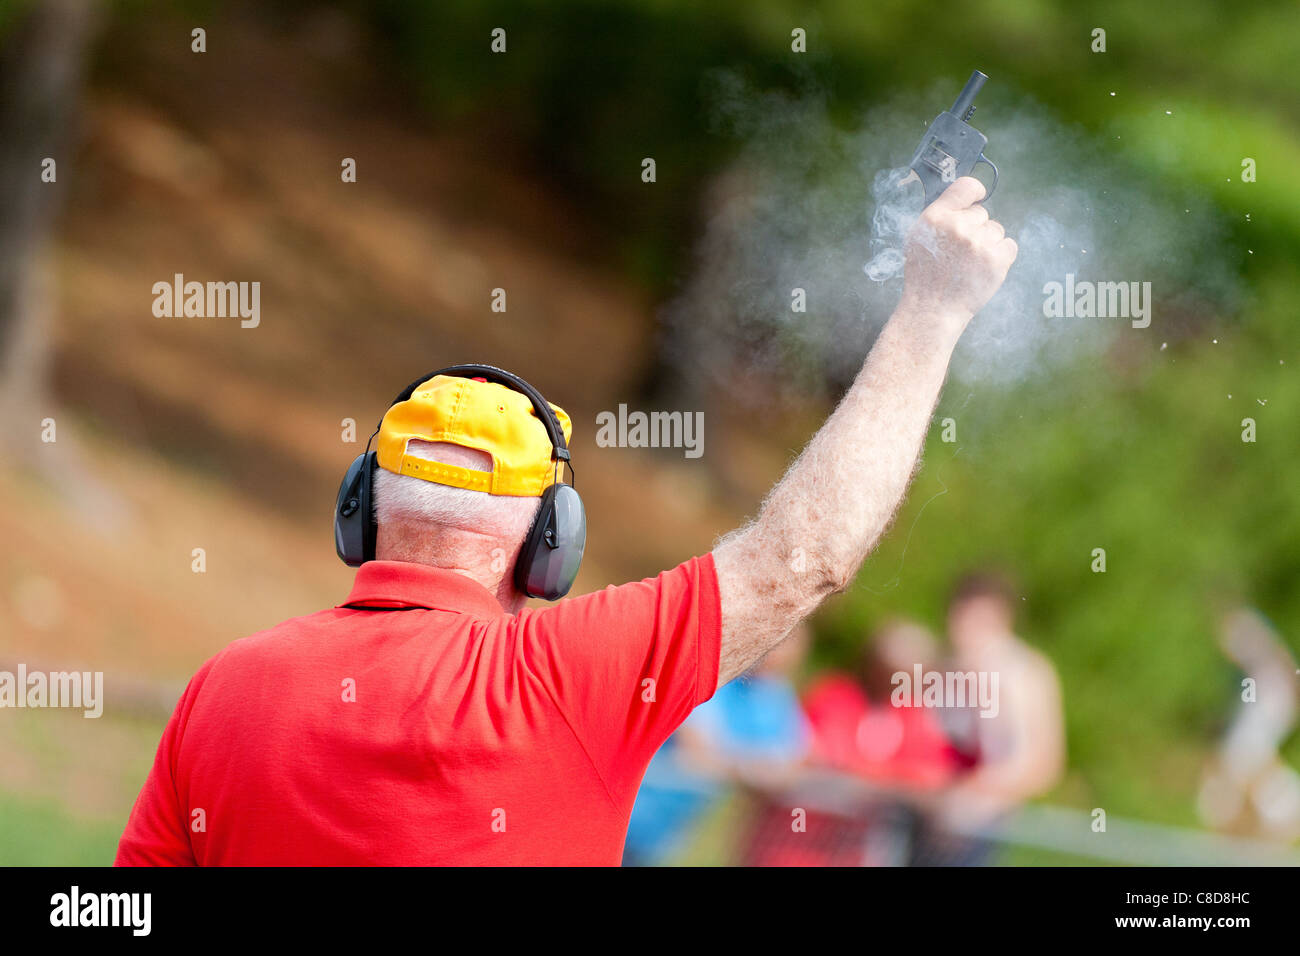 A referee fires the starter pistol for the runners of a track race. - Stock Image